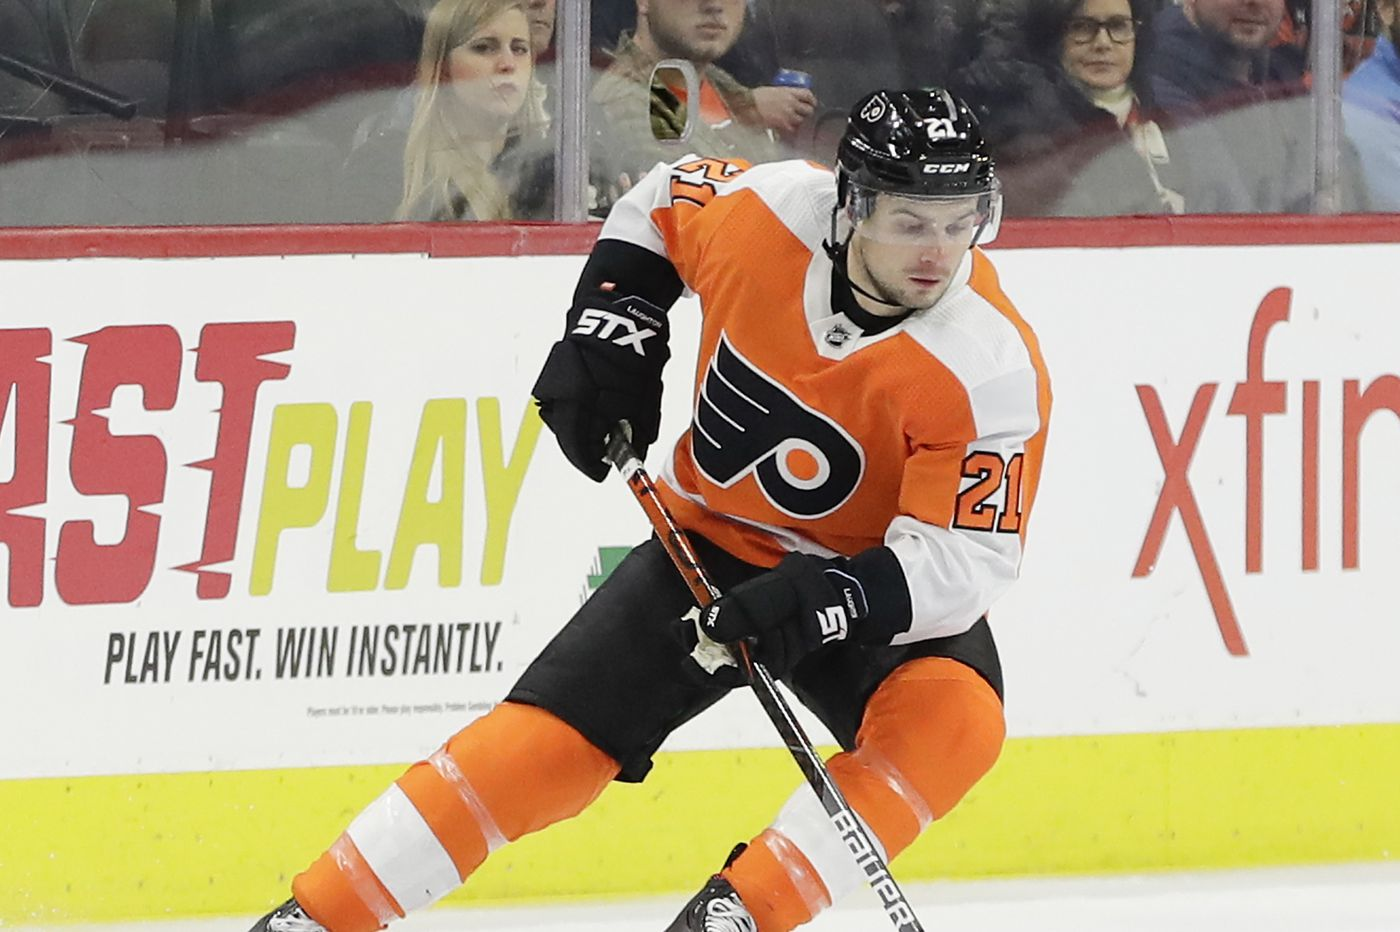 Two more Flyers injured as they fall to Minnesota Wild, 4-1